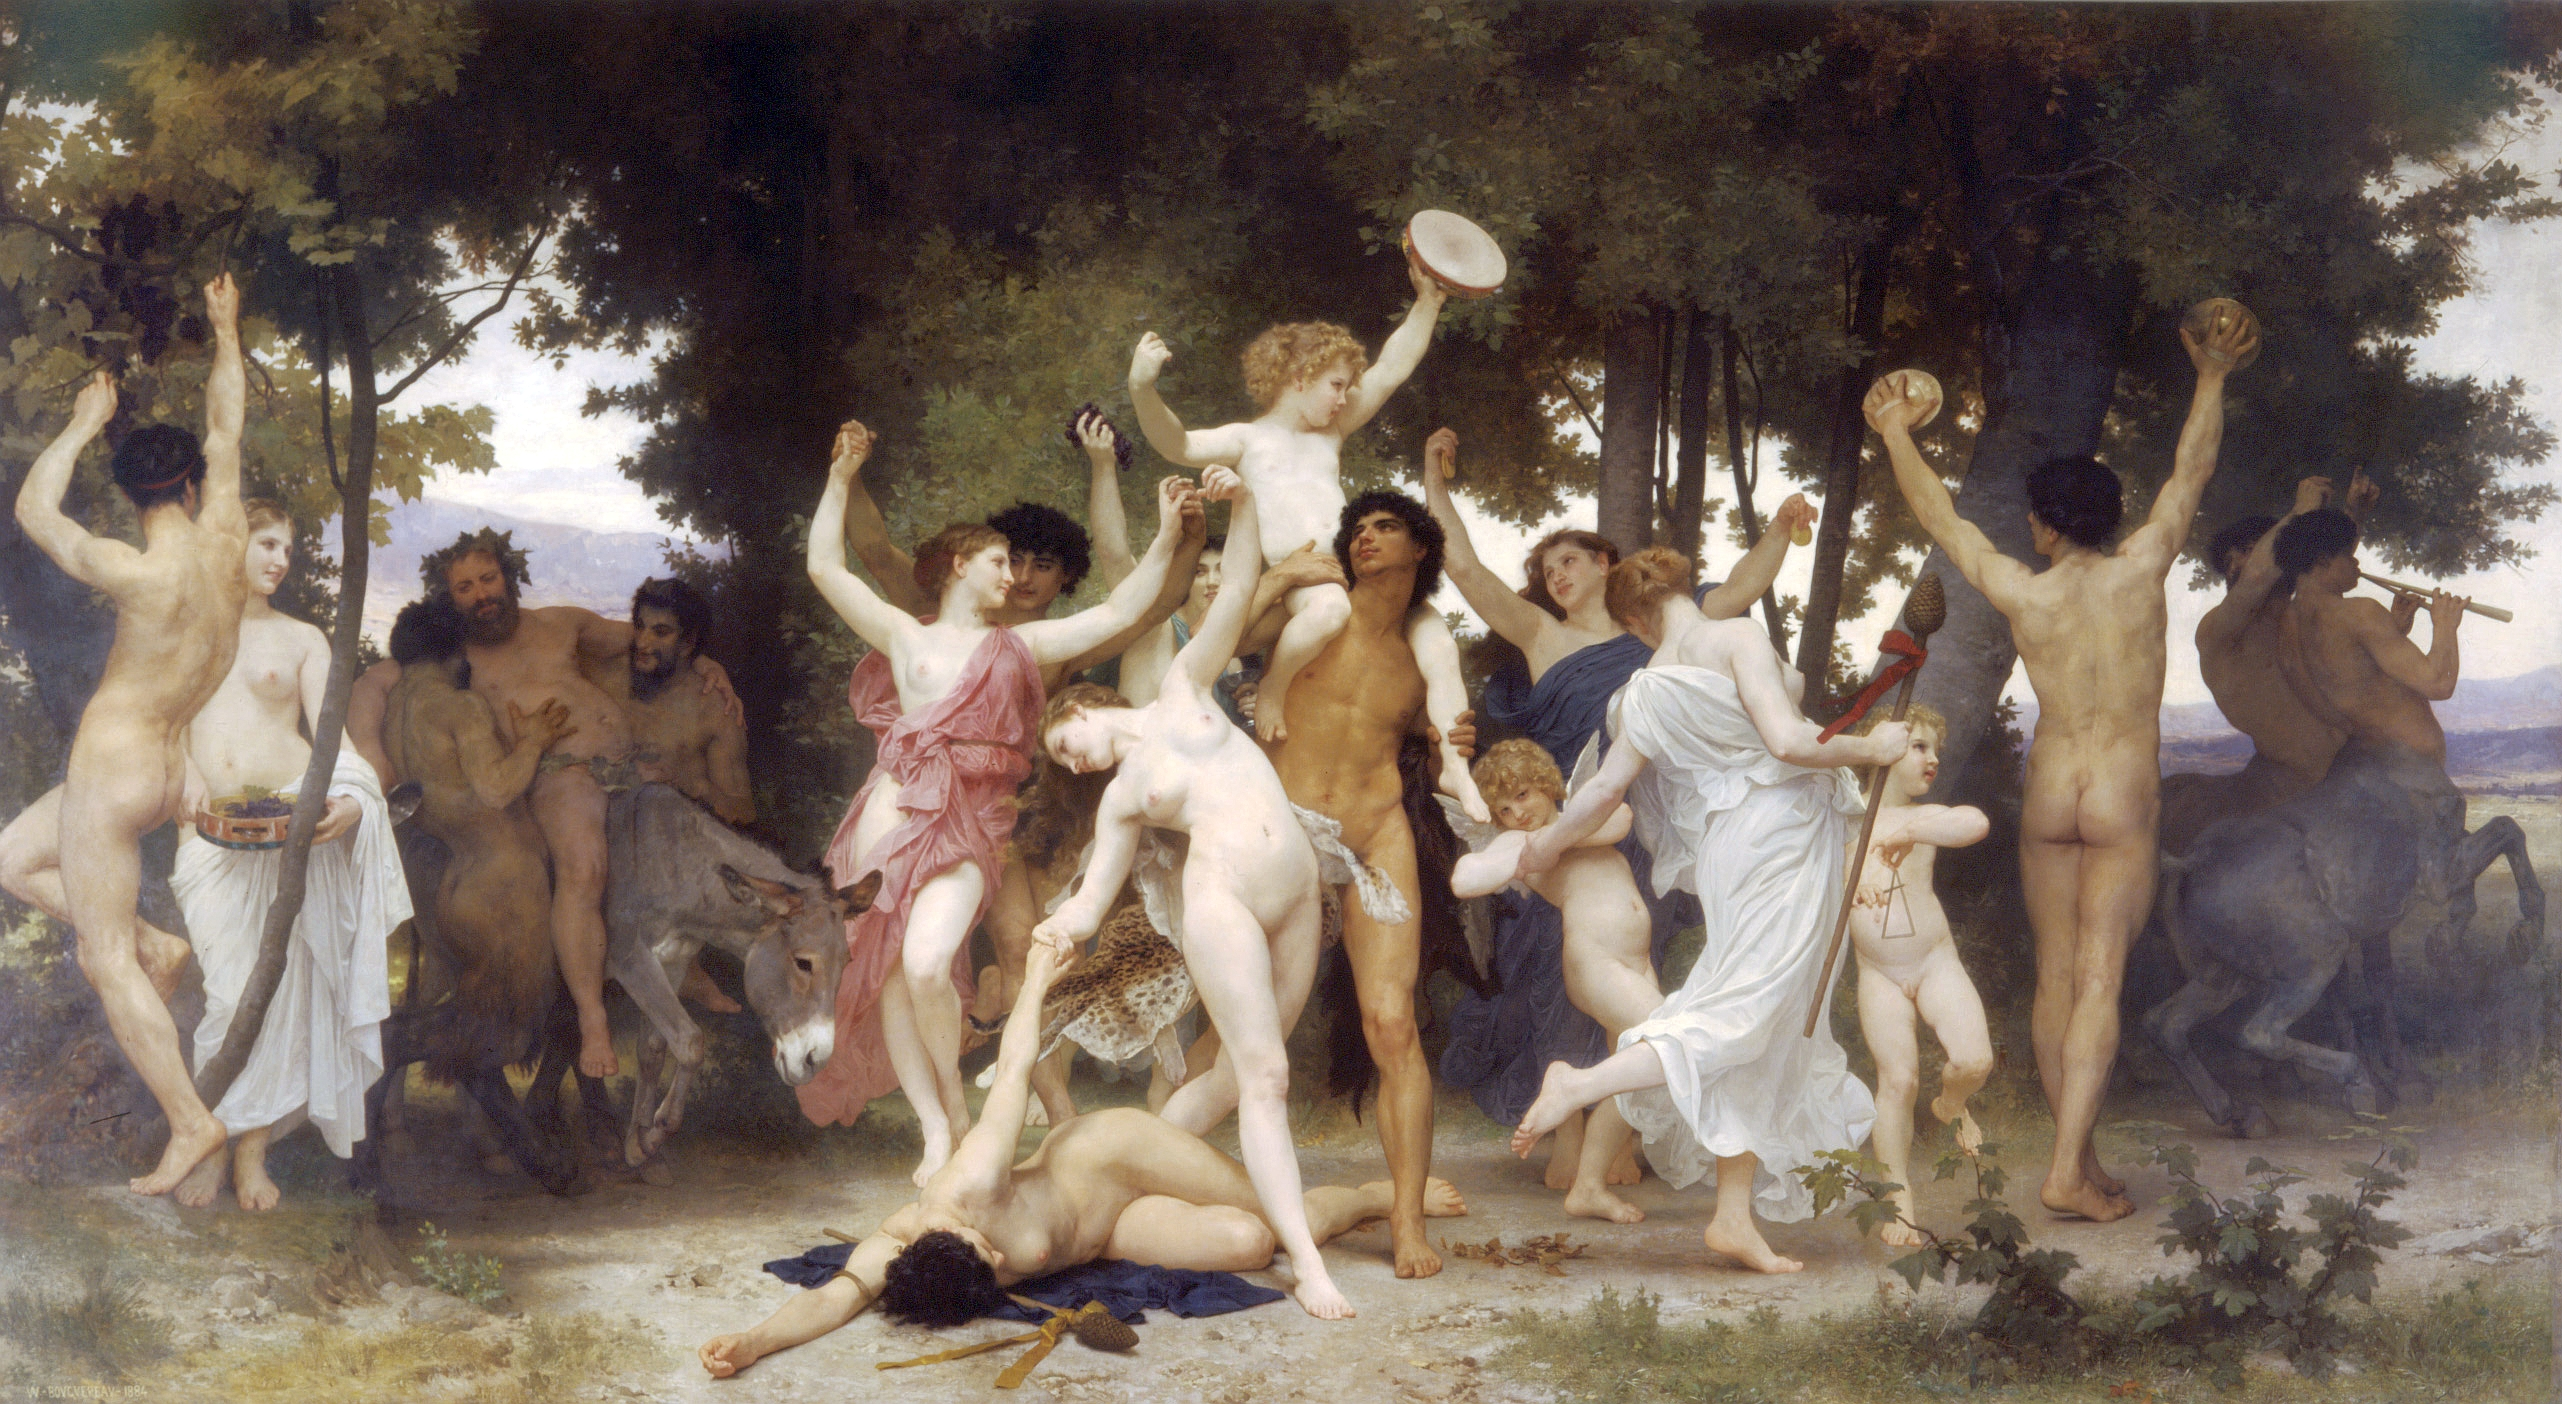 http://weartlovers.wehomeowners.com/wp-content/uploads/2016/07/the-youth-of-bacchus-1884.jpg